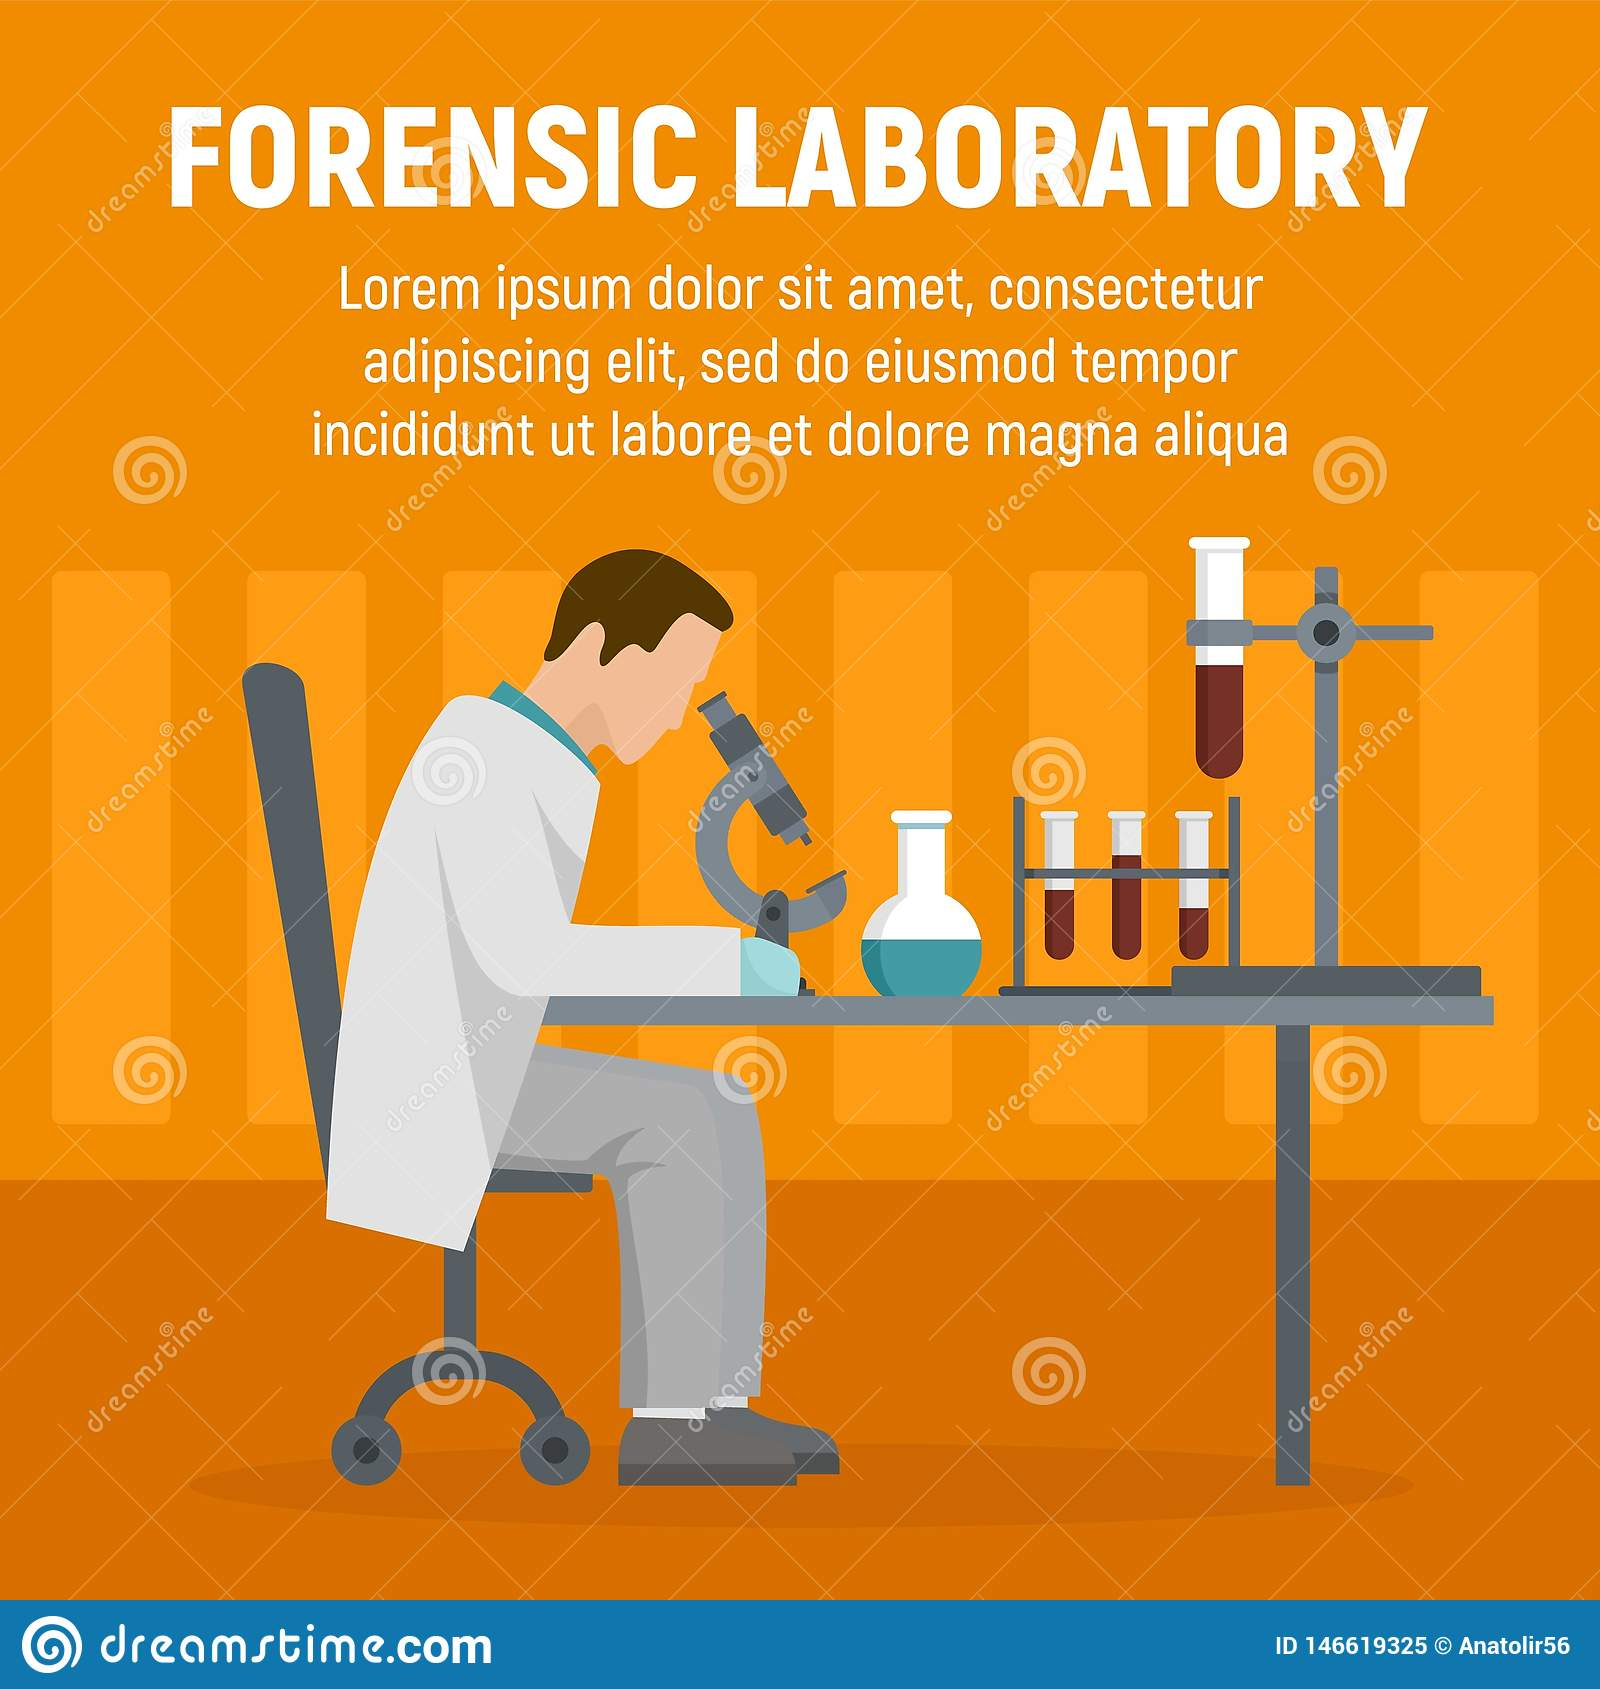 Forensic Laboratory Chemical Tube Concept Background Flat Style Stock Vector Illustration Of Biology Examine 146619325